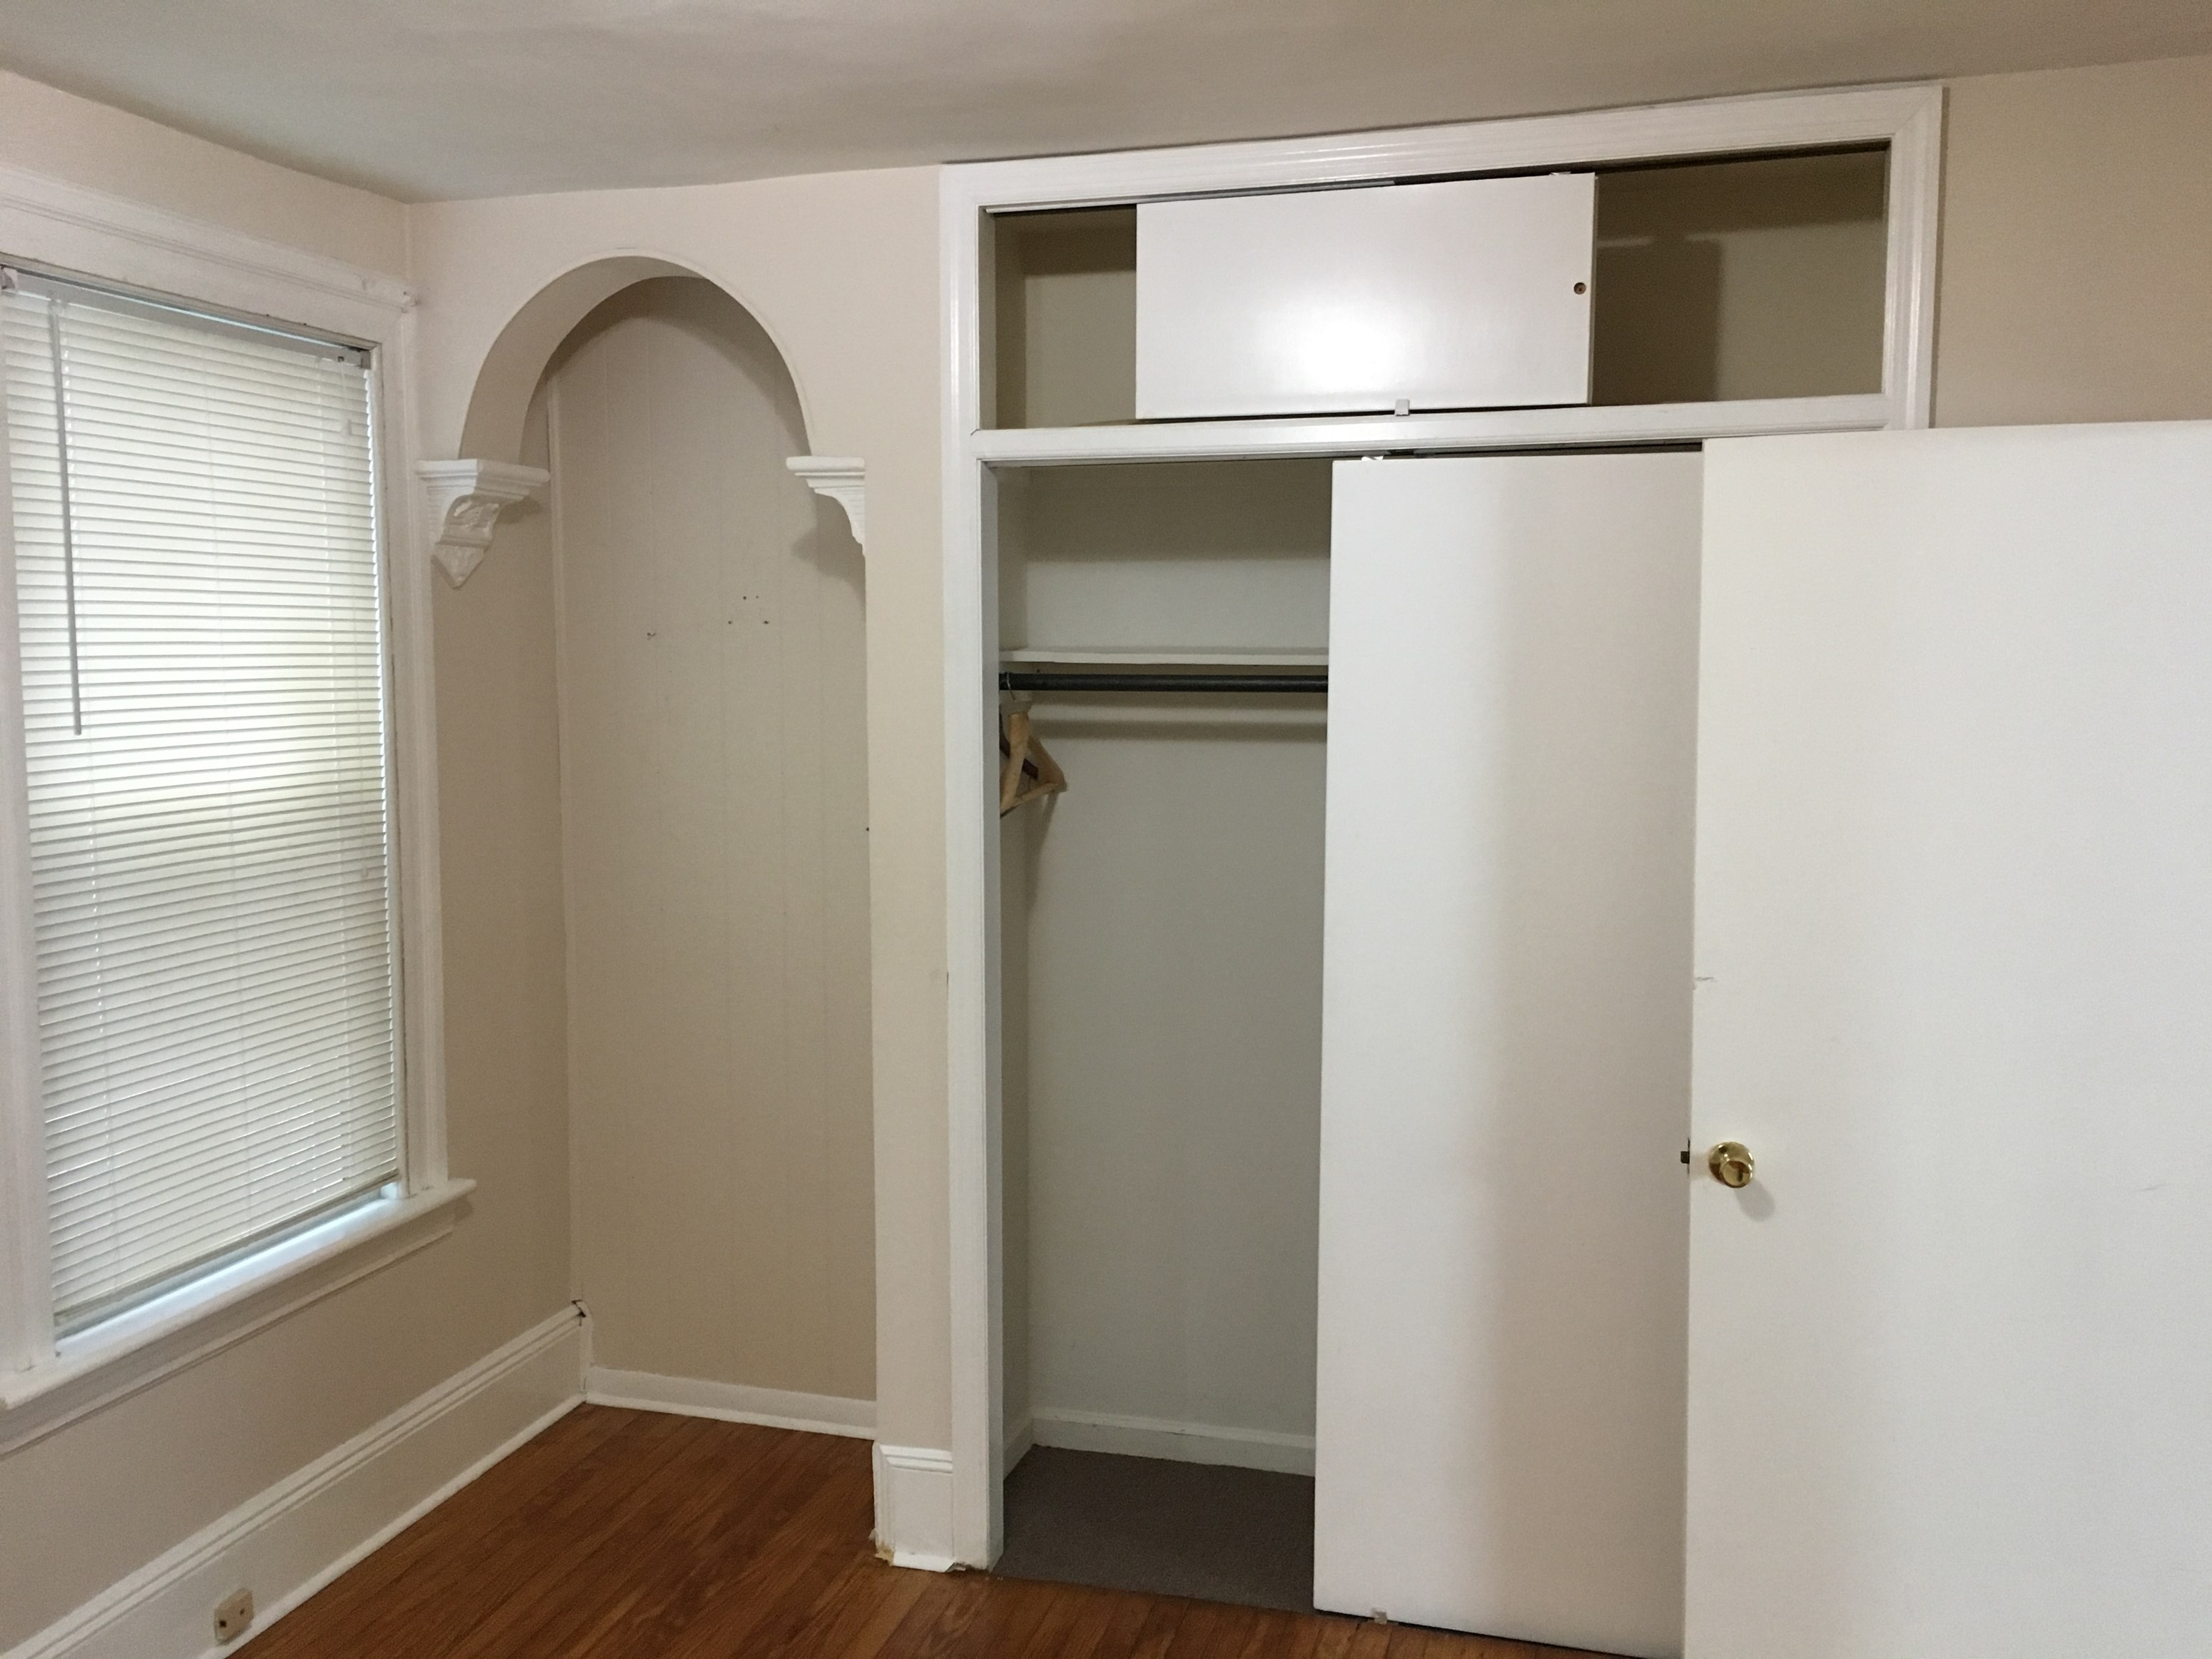 2 Bedroom Apartment For Rent In Bayonne Available From Aug 1st